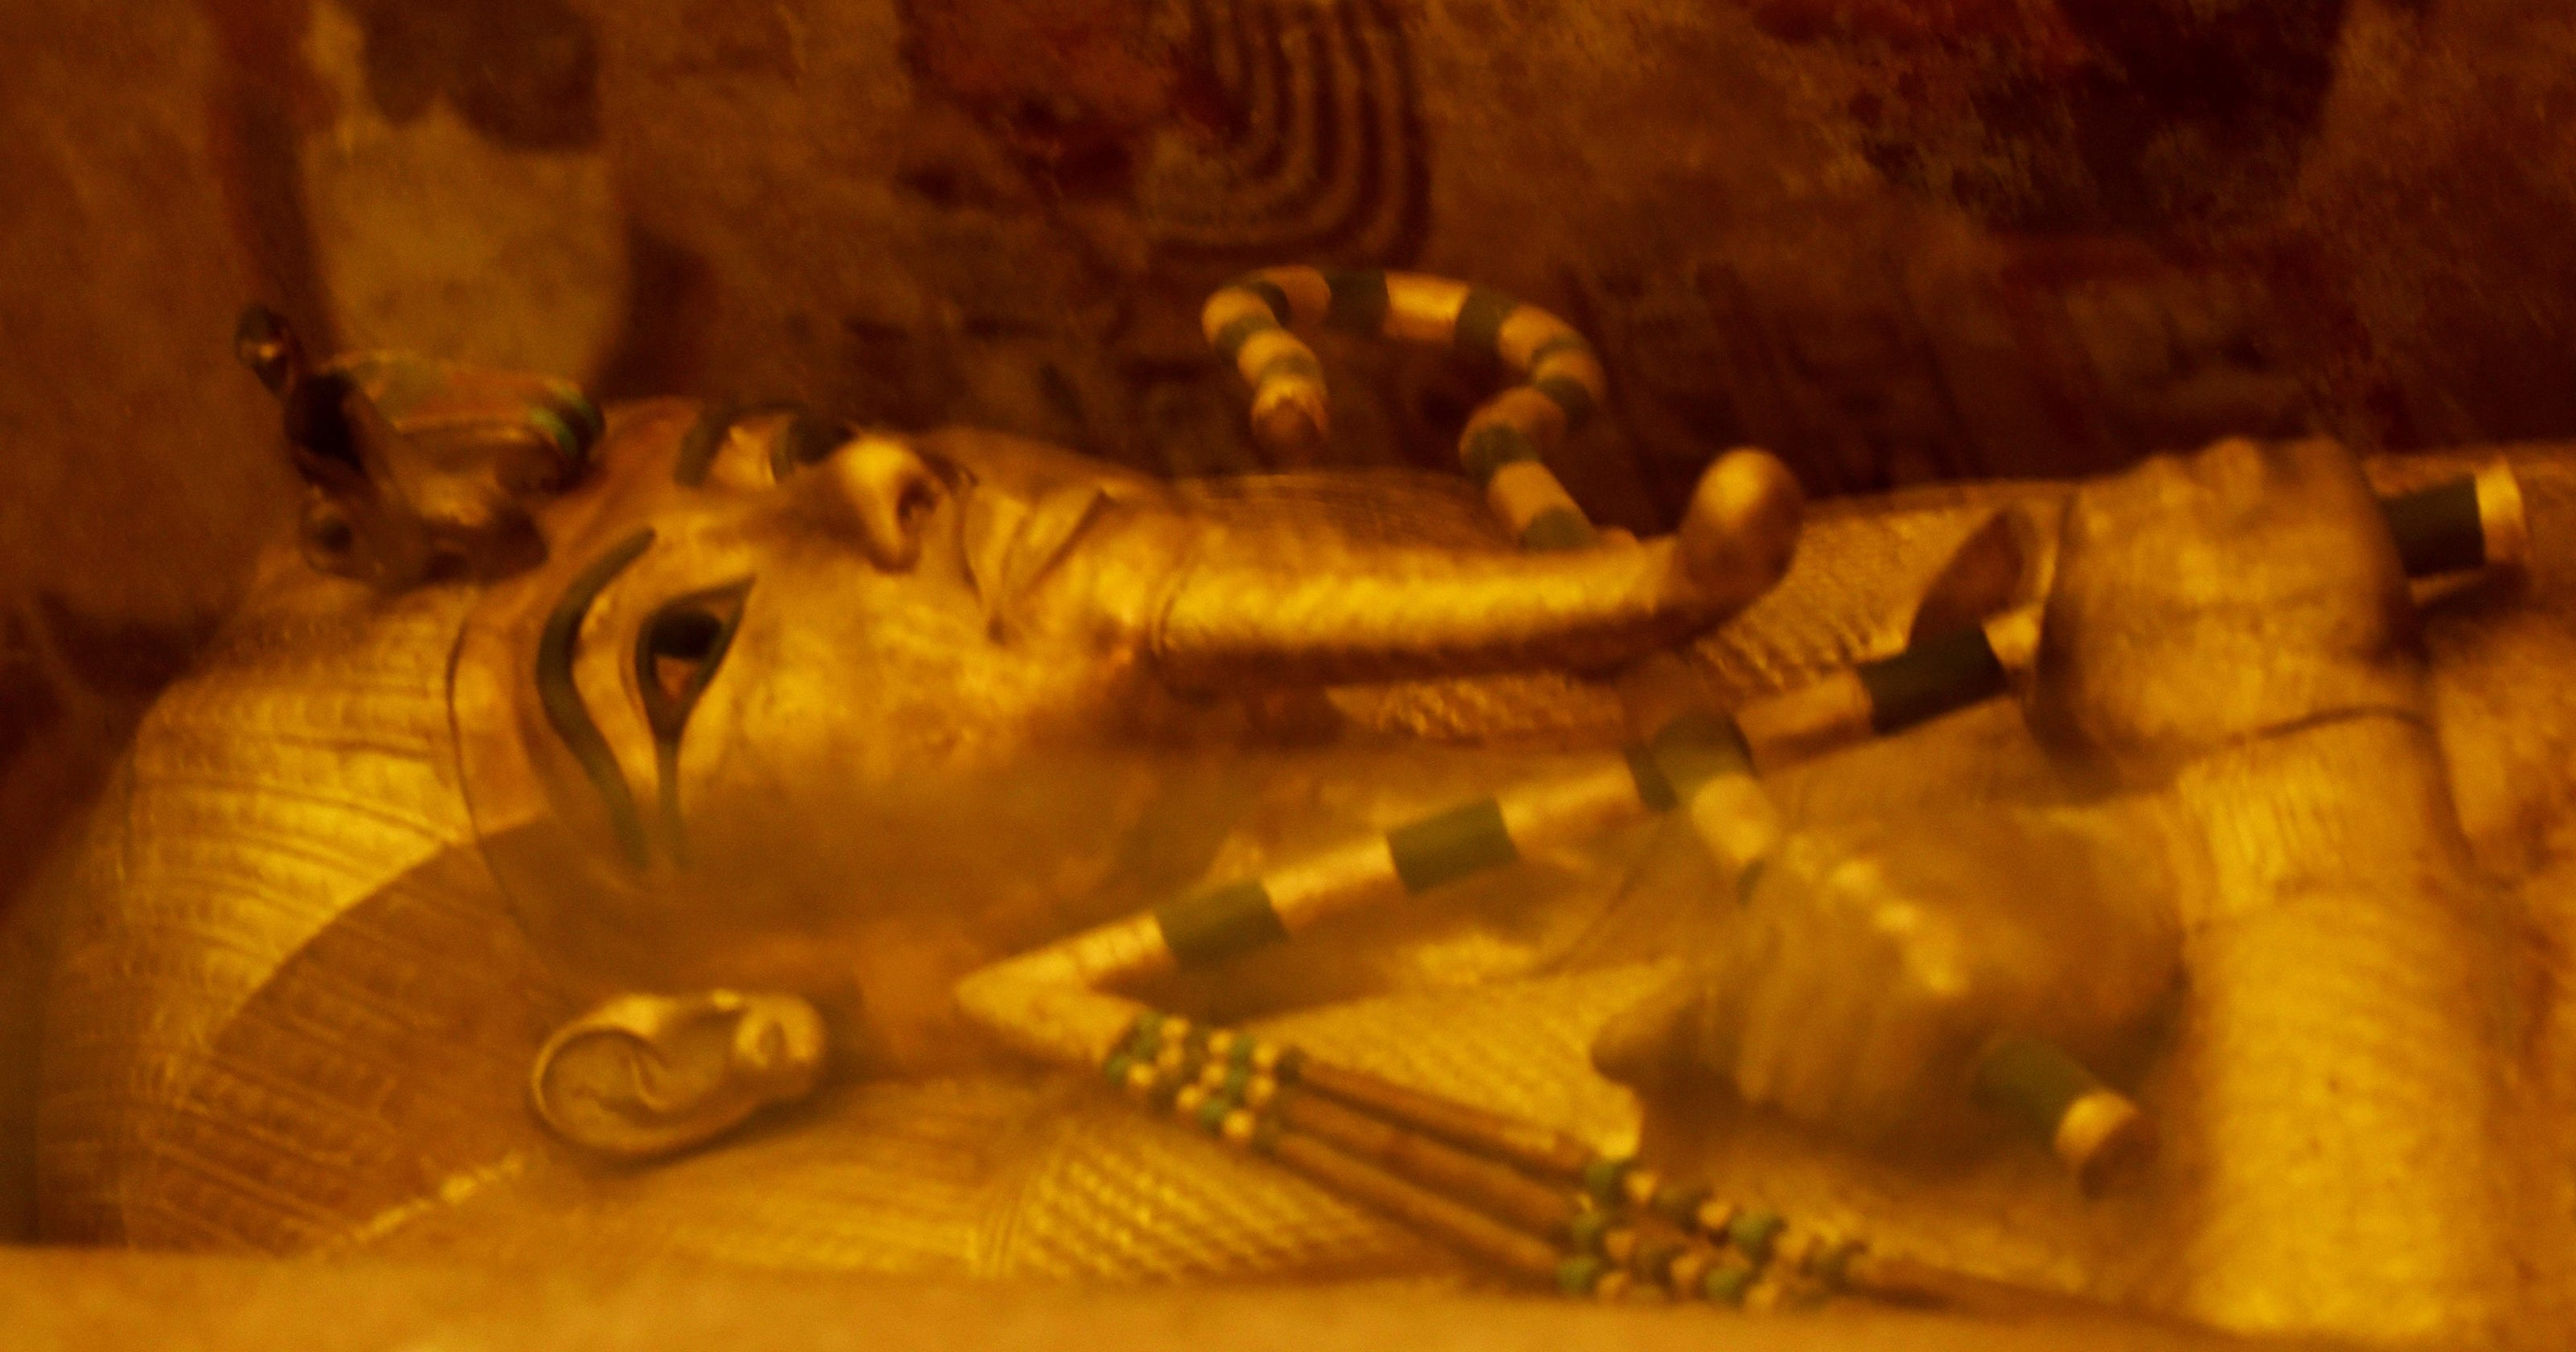 The Curse Of King Tuts Tomb Torrent: King Tut Tomb Theory Suddenly In Doubt